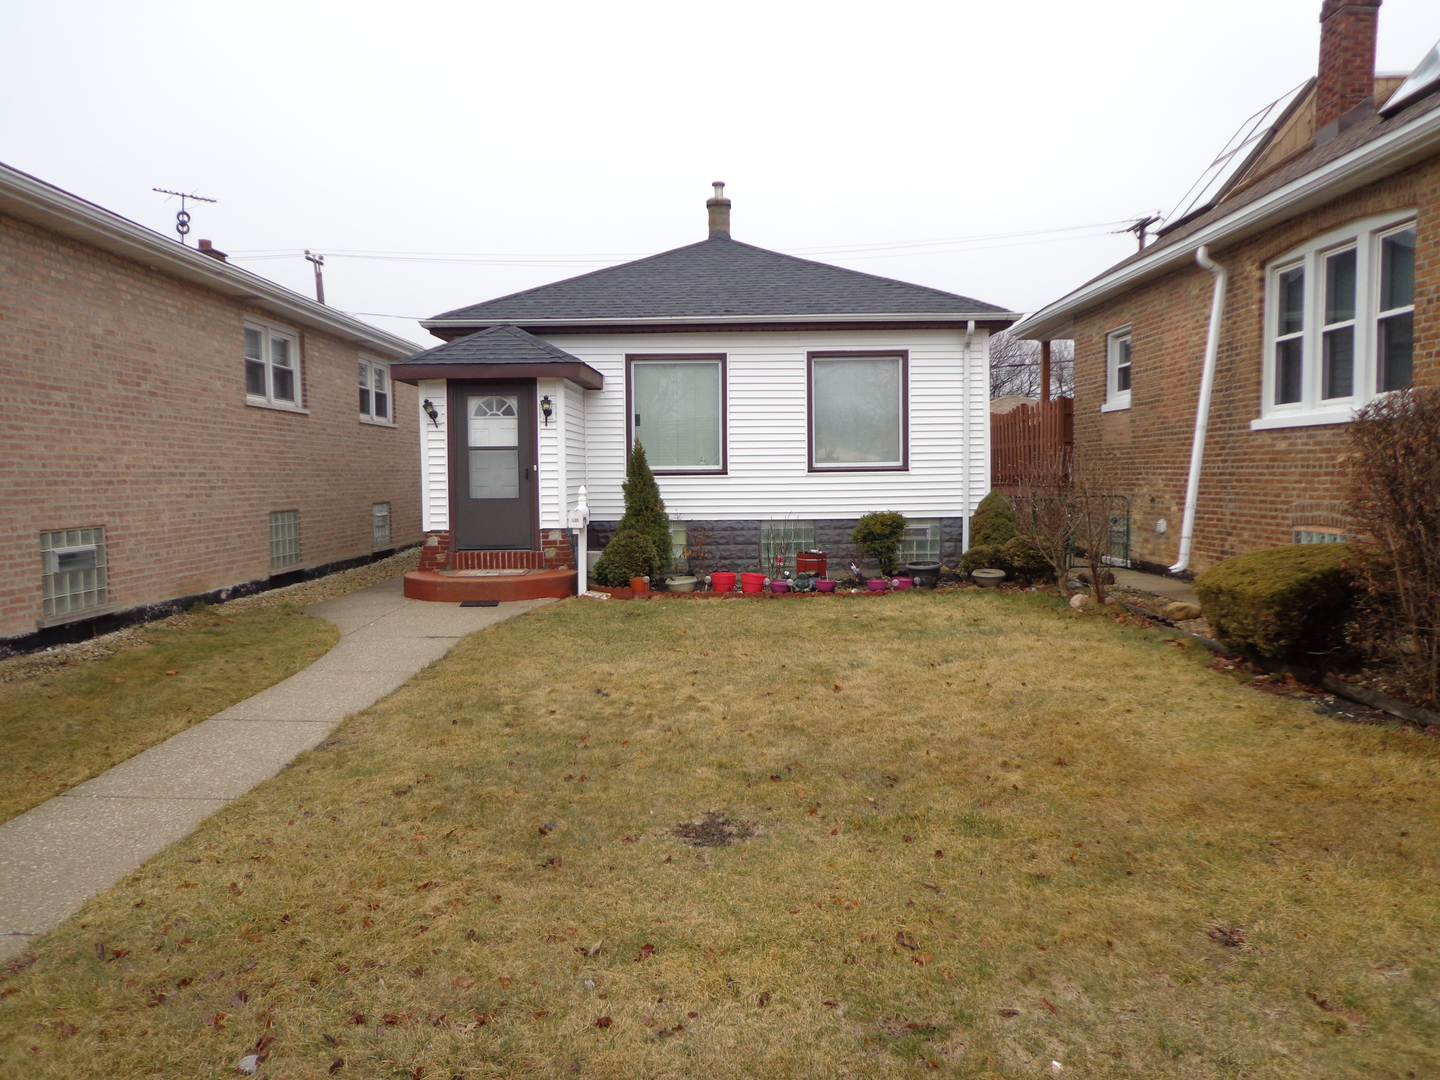 5408 S RUTHERFORD Exterior Photo